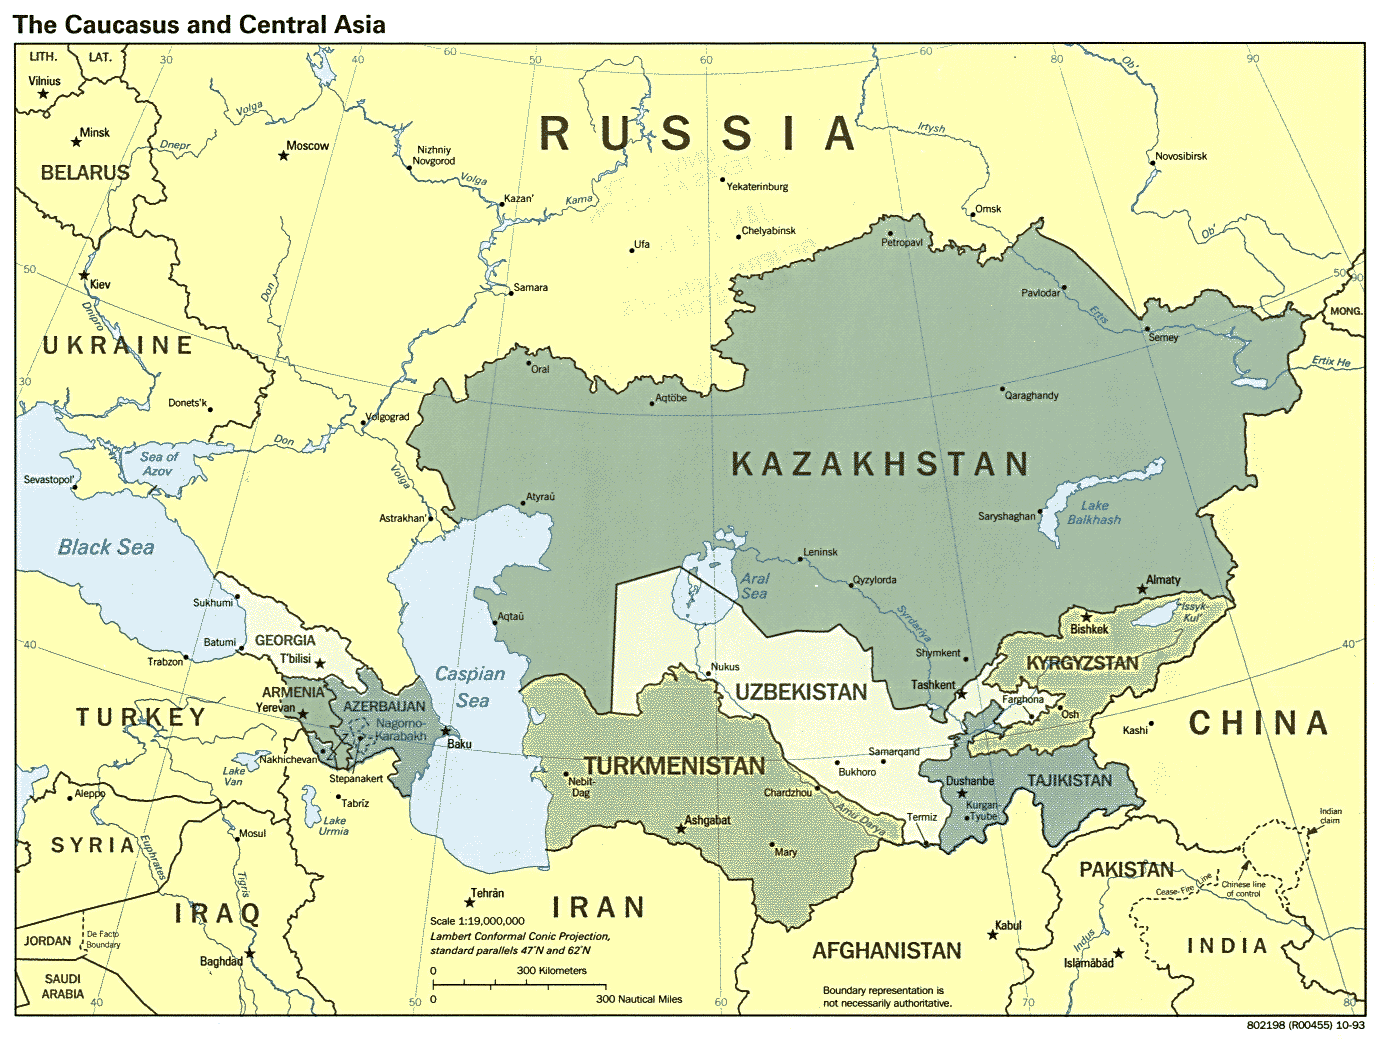 aral sea, central asia map | maps | Pinterest | Central asia map